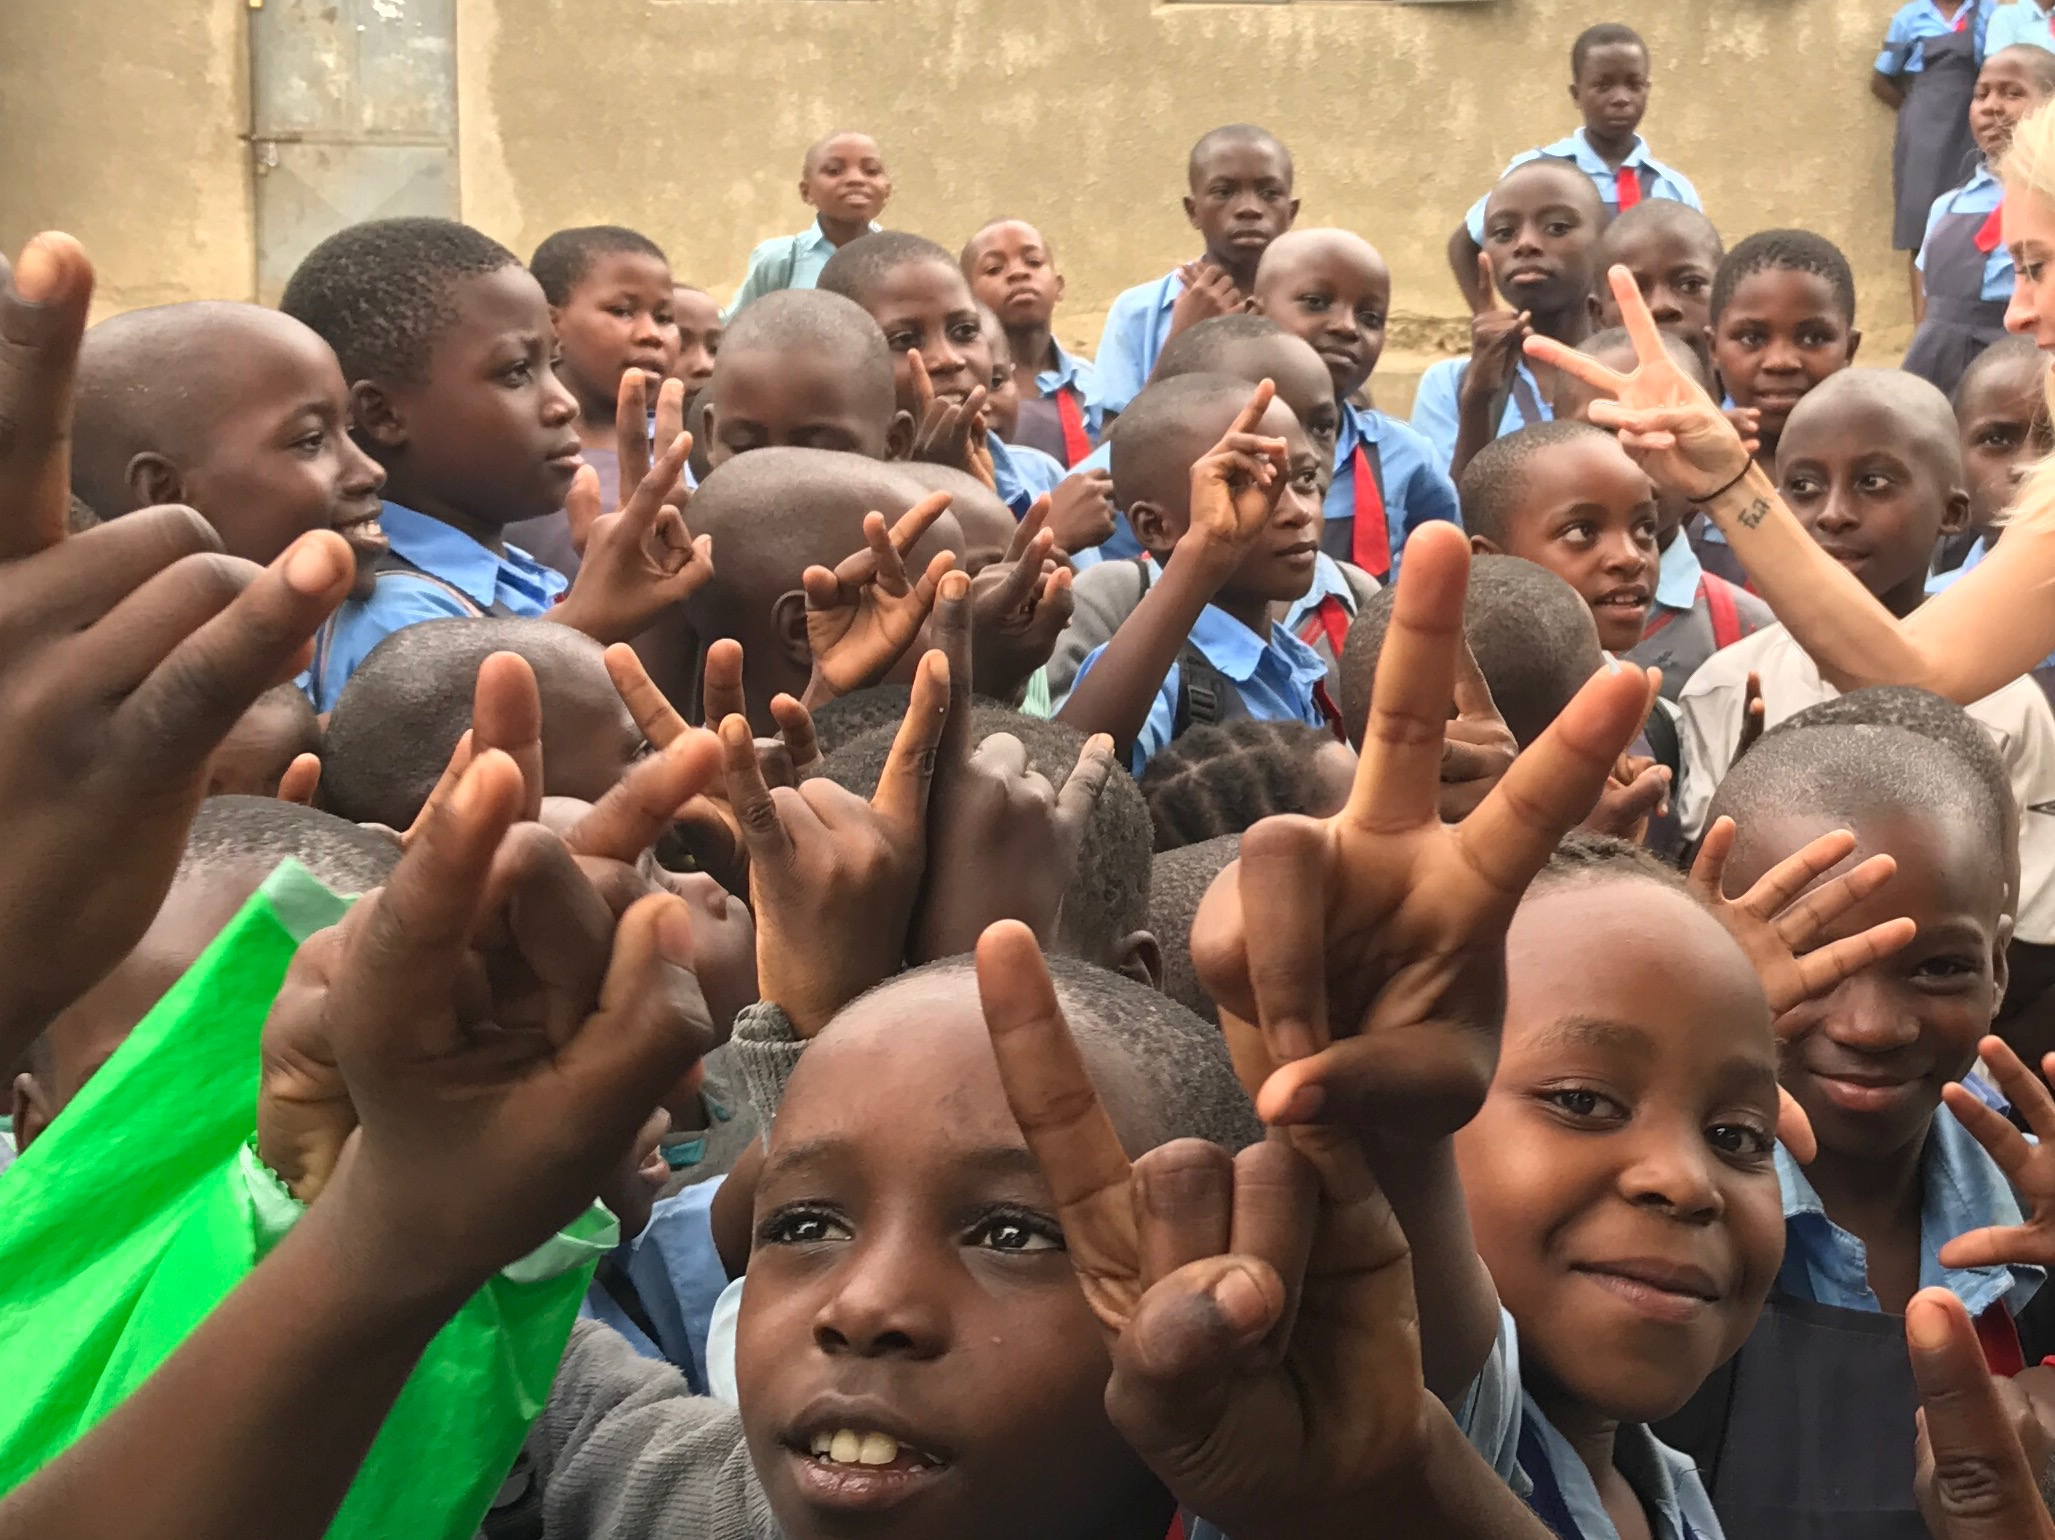 Become A Pen Pal - Project Hope: Uganda